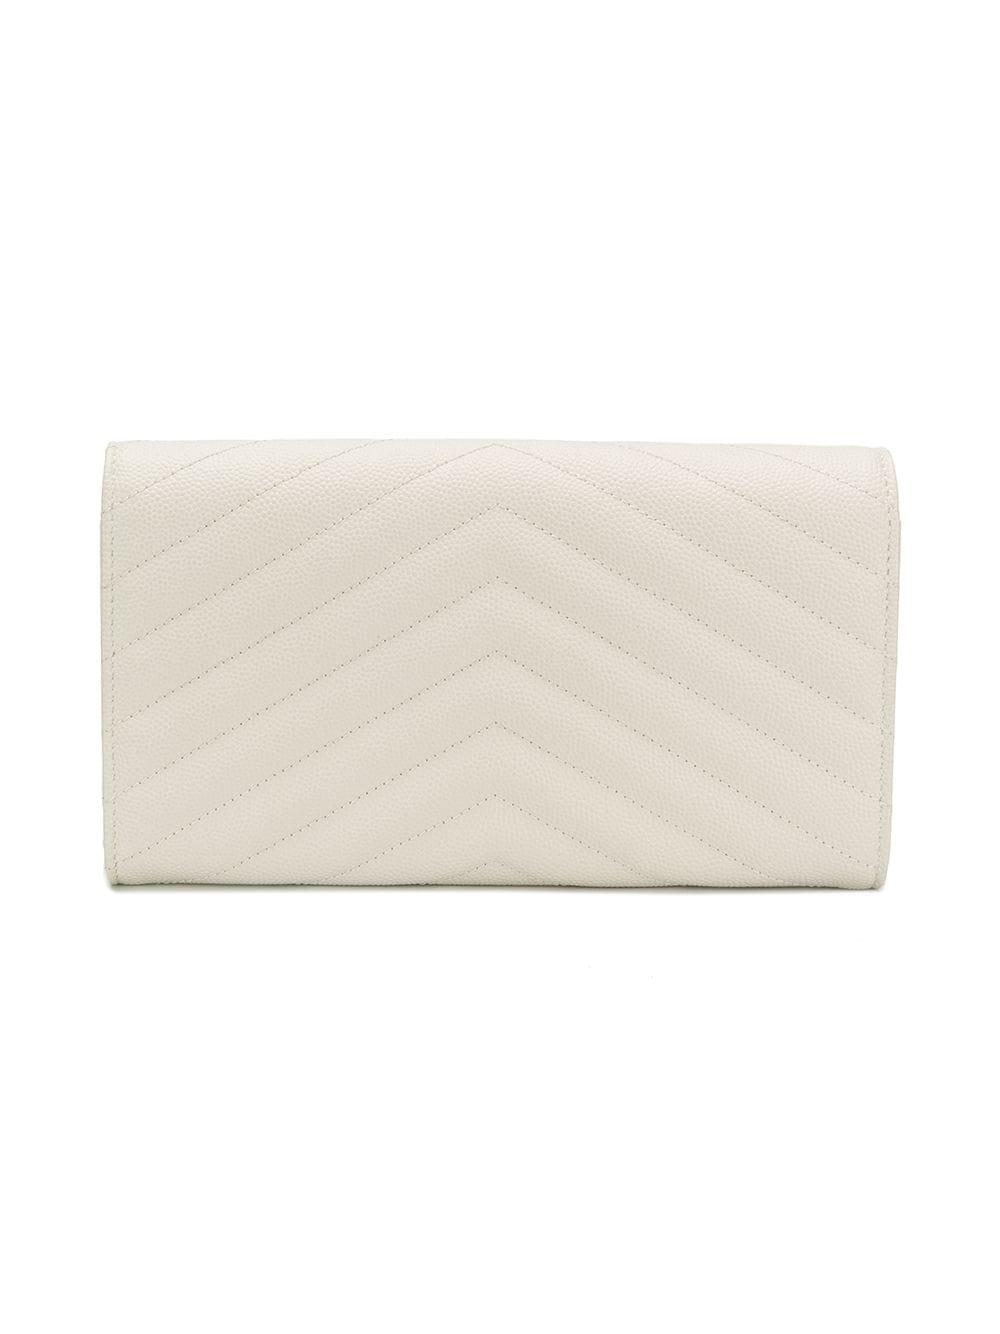 29a0be069f61 Lyst - Saint Laurent Quilted Wallet